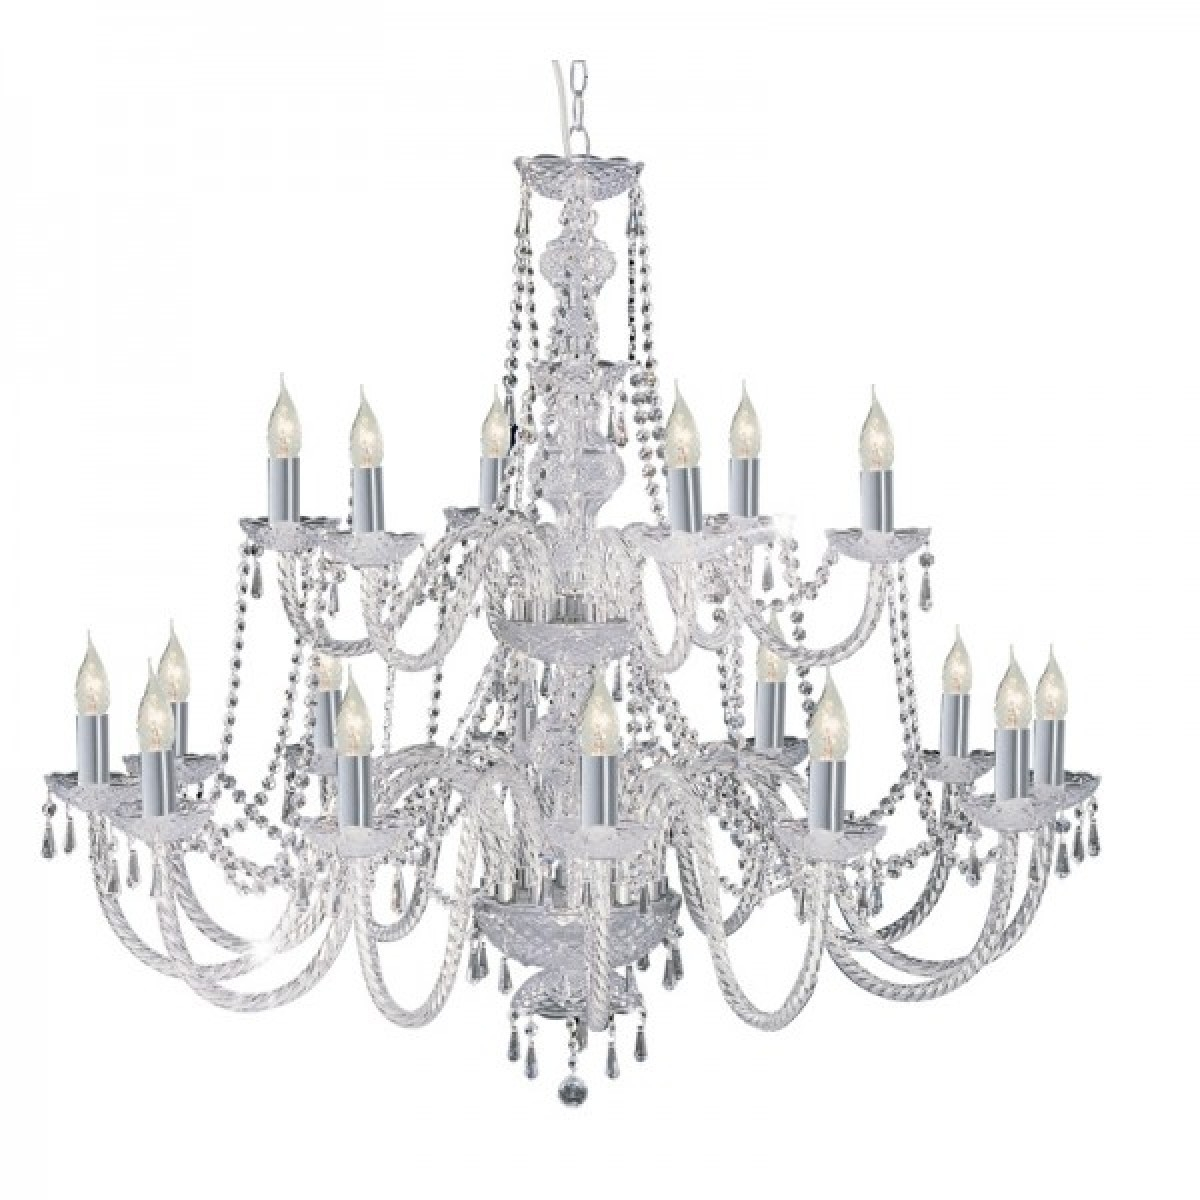 Hale Georgian Style Crystal Chandelier With Barley Twist Glass And With Chrome And Crystal Chandeliers (Image 17 of 25)